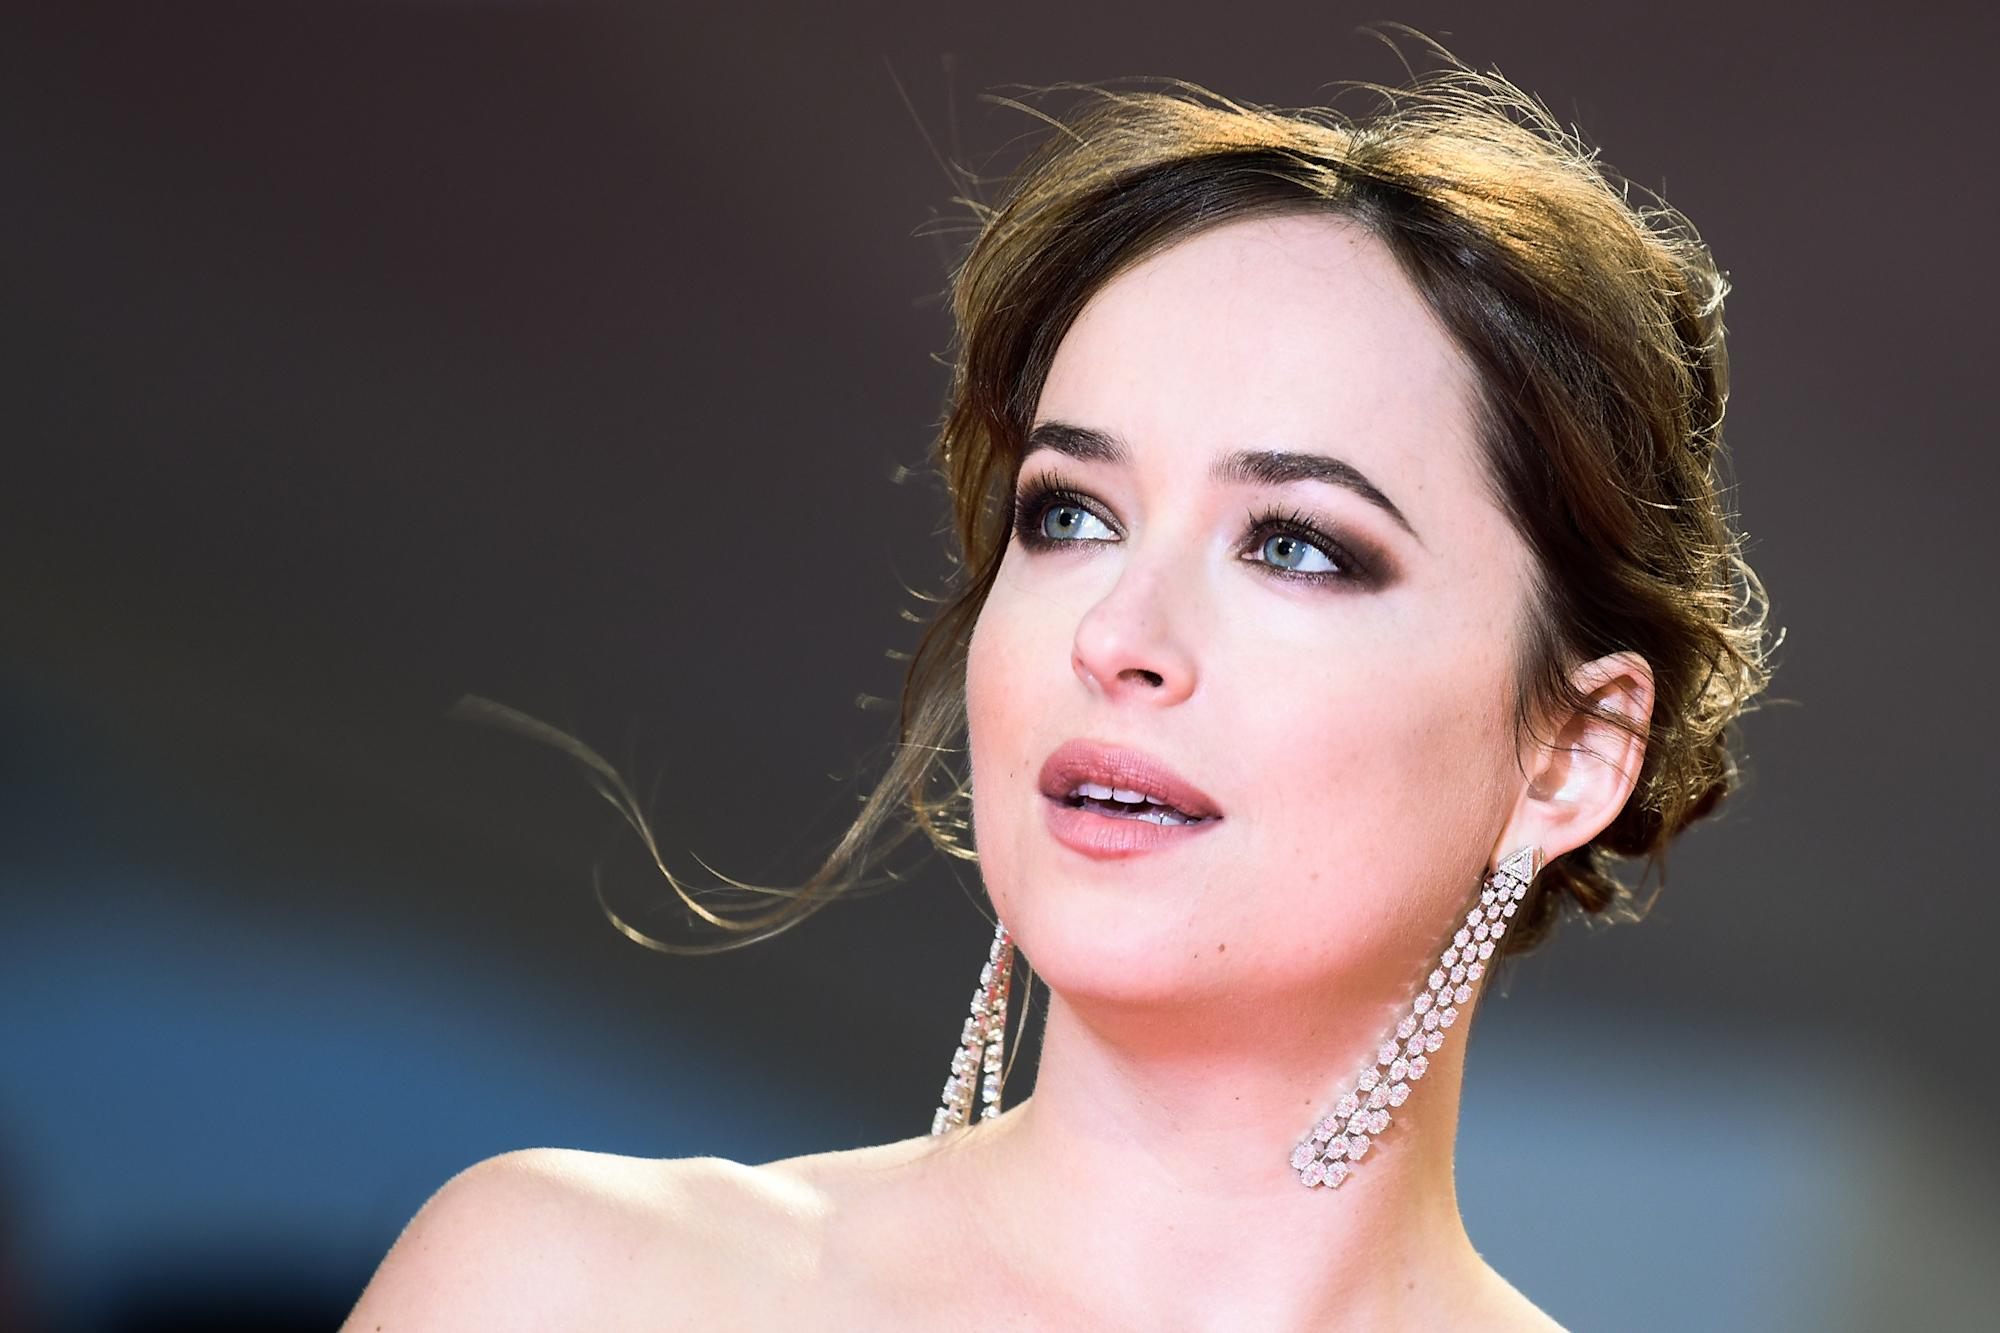 Dakota Johnson says we shouldn't call vibrators sex toys. Here's why she may be right.